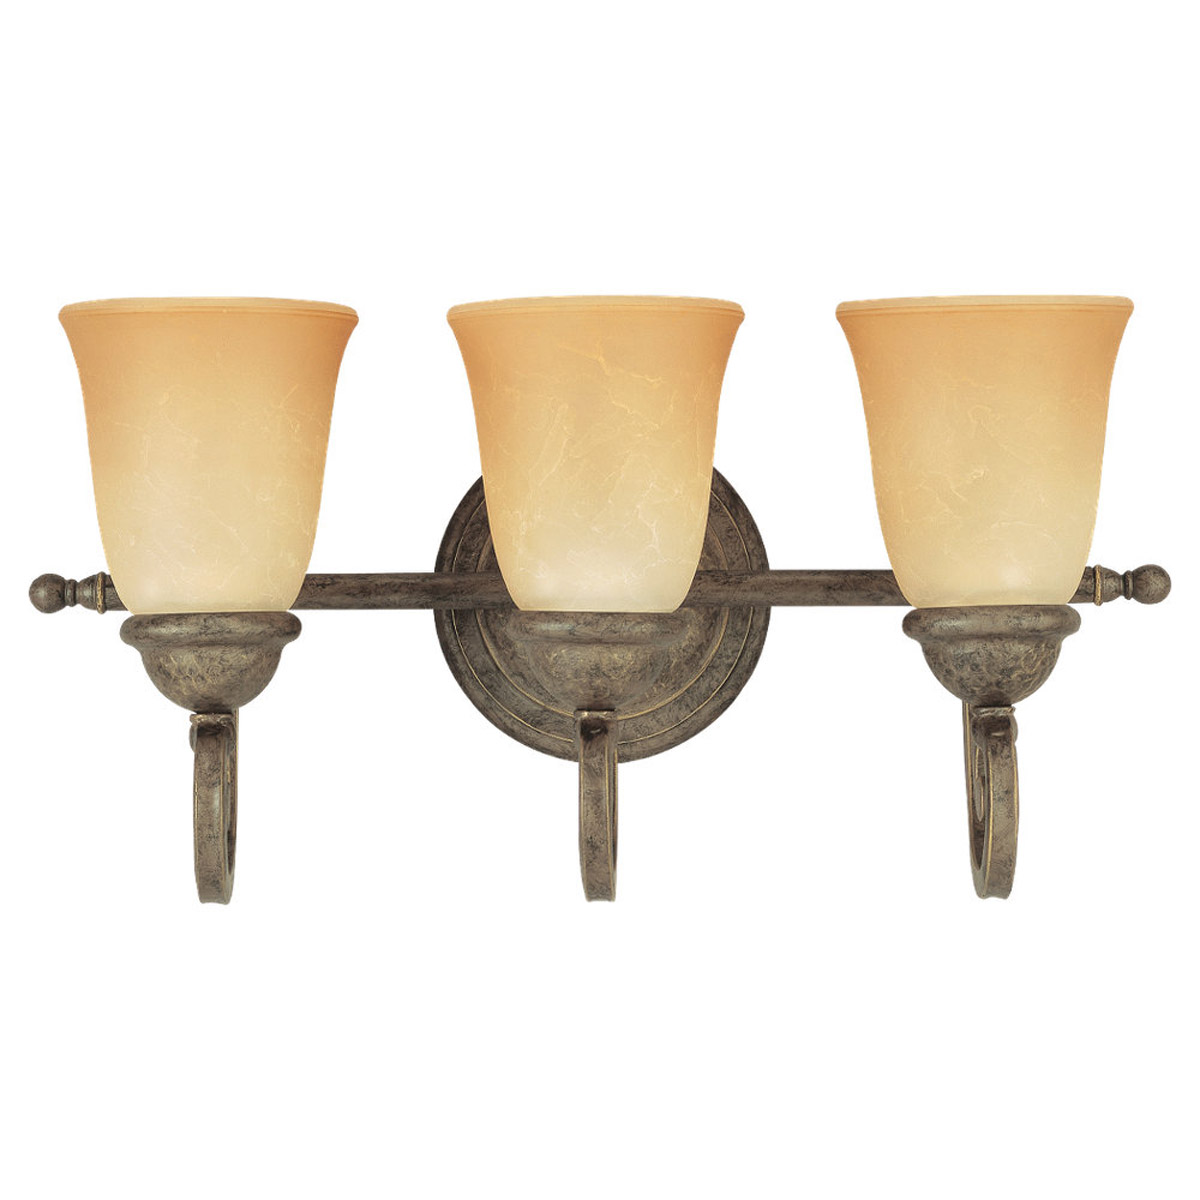 Sea Gull Lighting Brandywine 3 Light Bath Vanity in Antique Bronze 44431-71